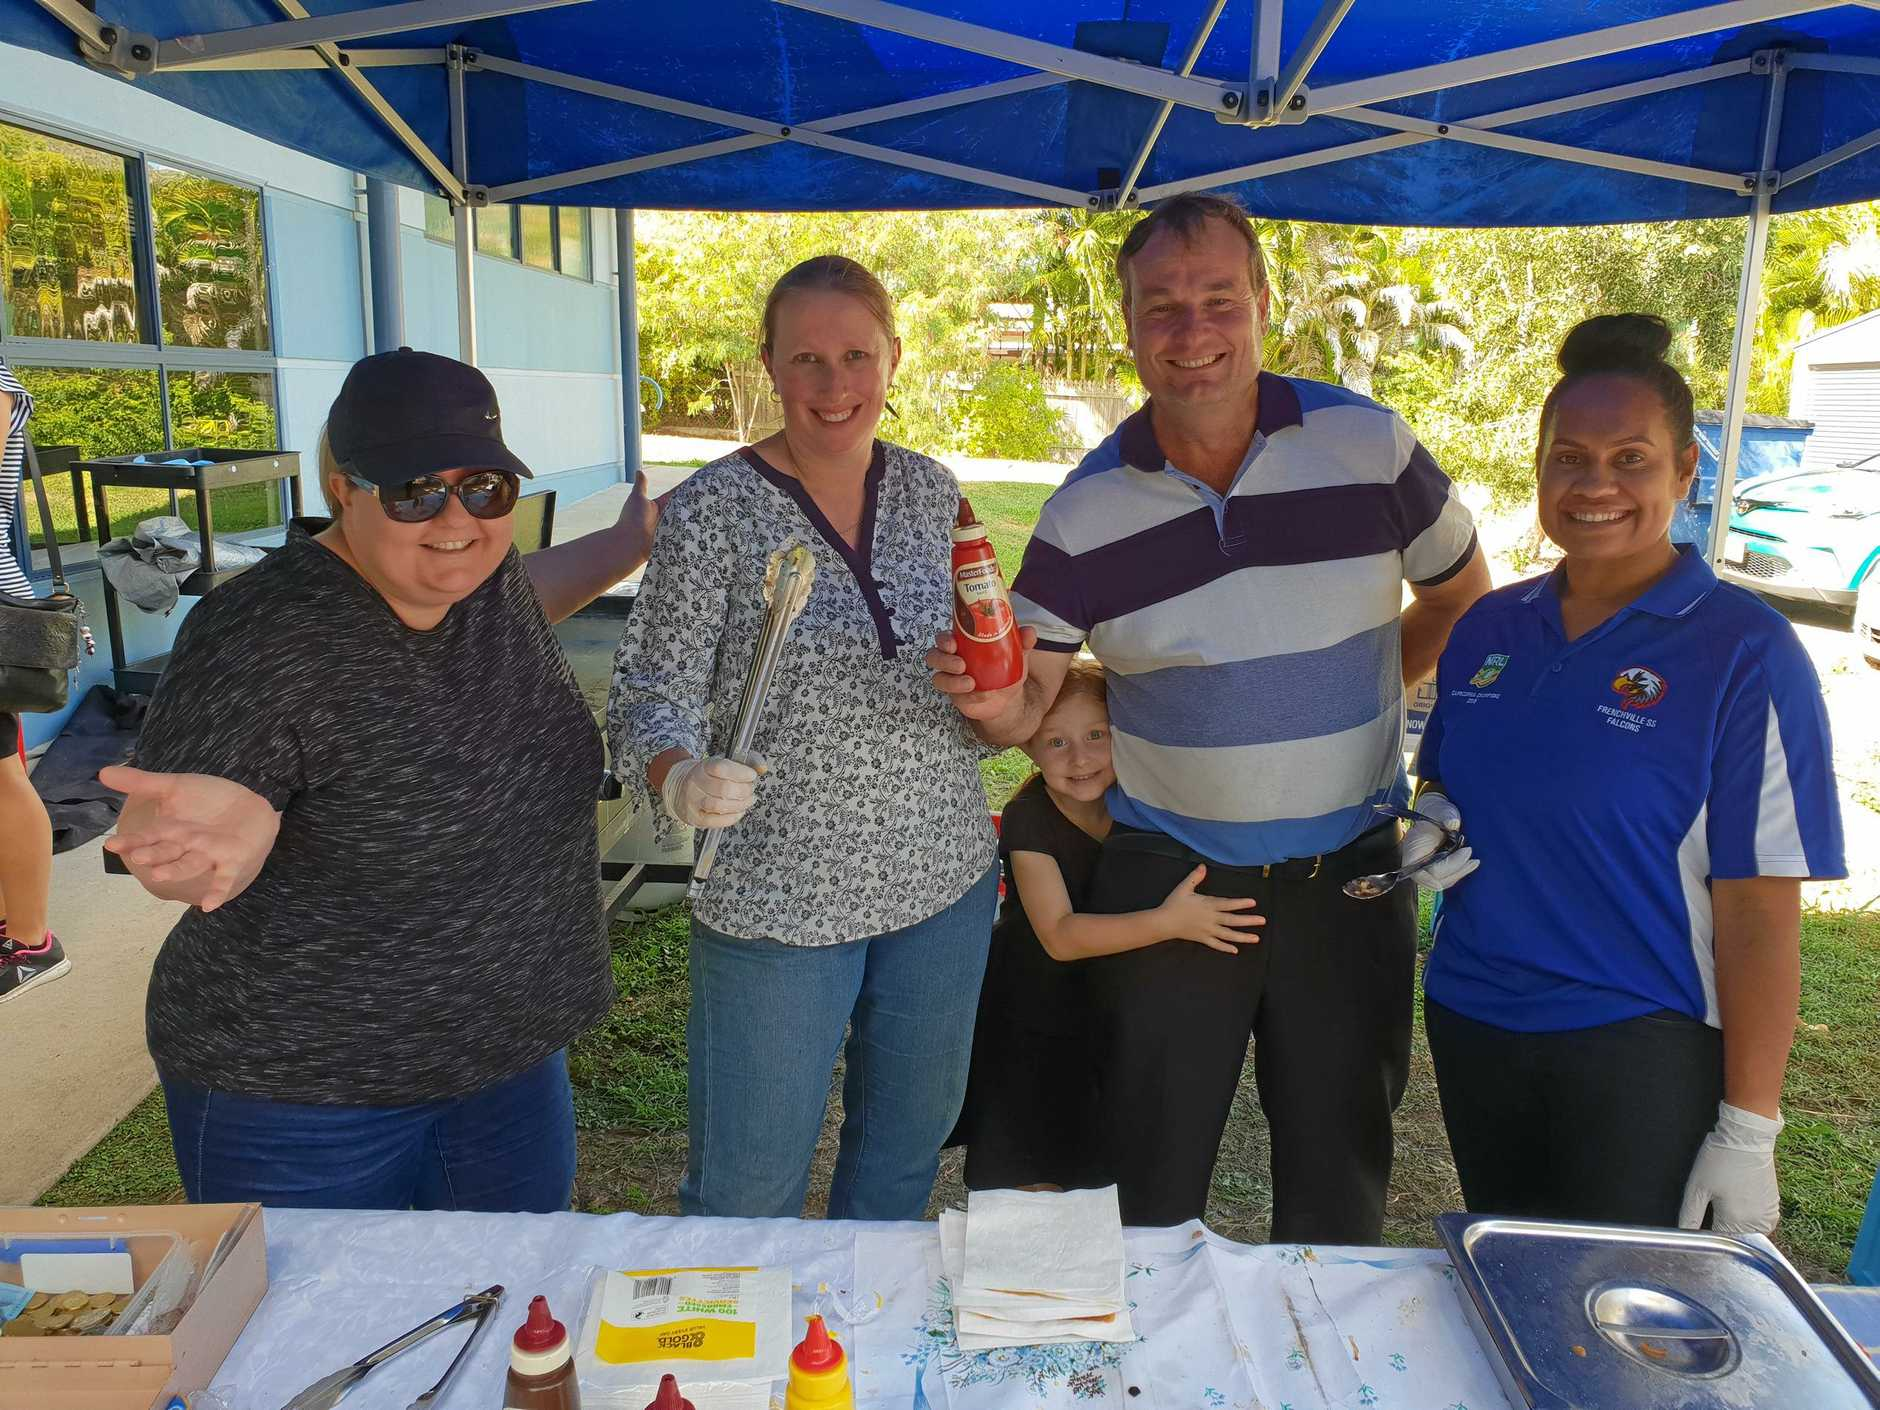 SAUSAGE SHORTAGE: Frenchville Primary School's fundraising efforts went better than expected, with Jacinta Delalande (left), Henrike Hilse, Shane Latcham and Anna Umba selling out of sausages by lunchtime today.